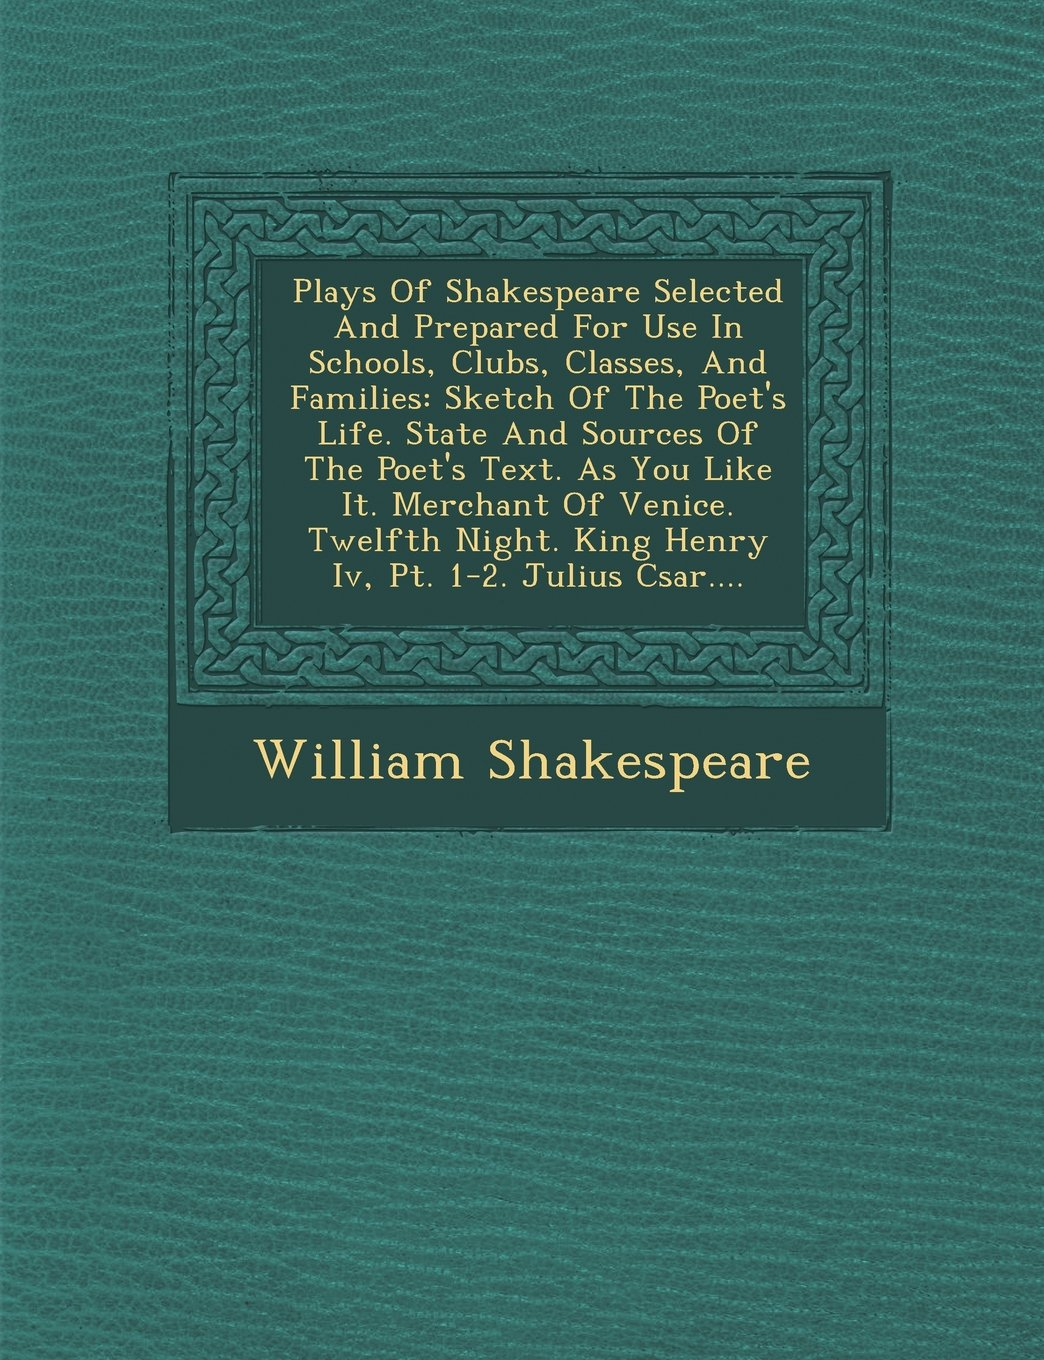 Download Plays Of Shakespeare Selected And Prepared For Use In Schools, Clubs, Classes, And Families: Sketch Of The Poet's Life. State And Sources Of The ... King Henry Iv, Pt. 1-2. Julius Csar.... pdf epub